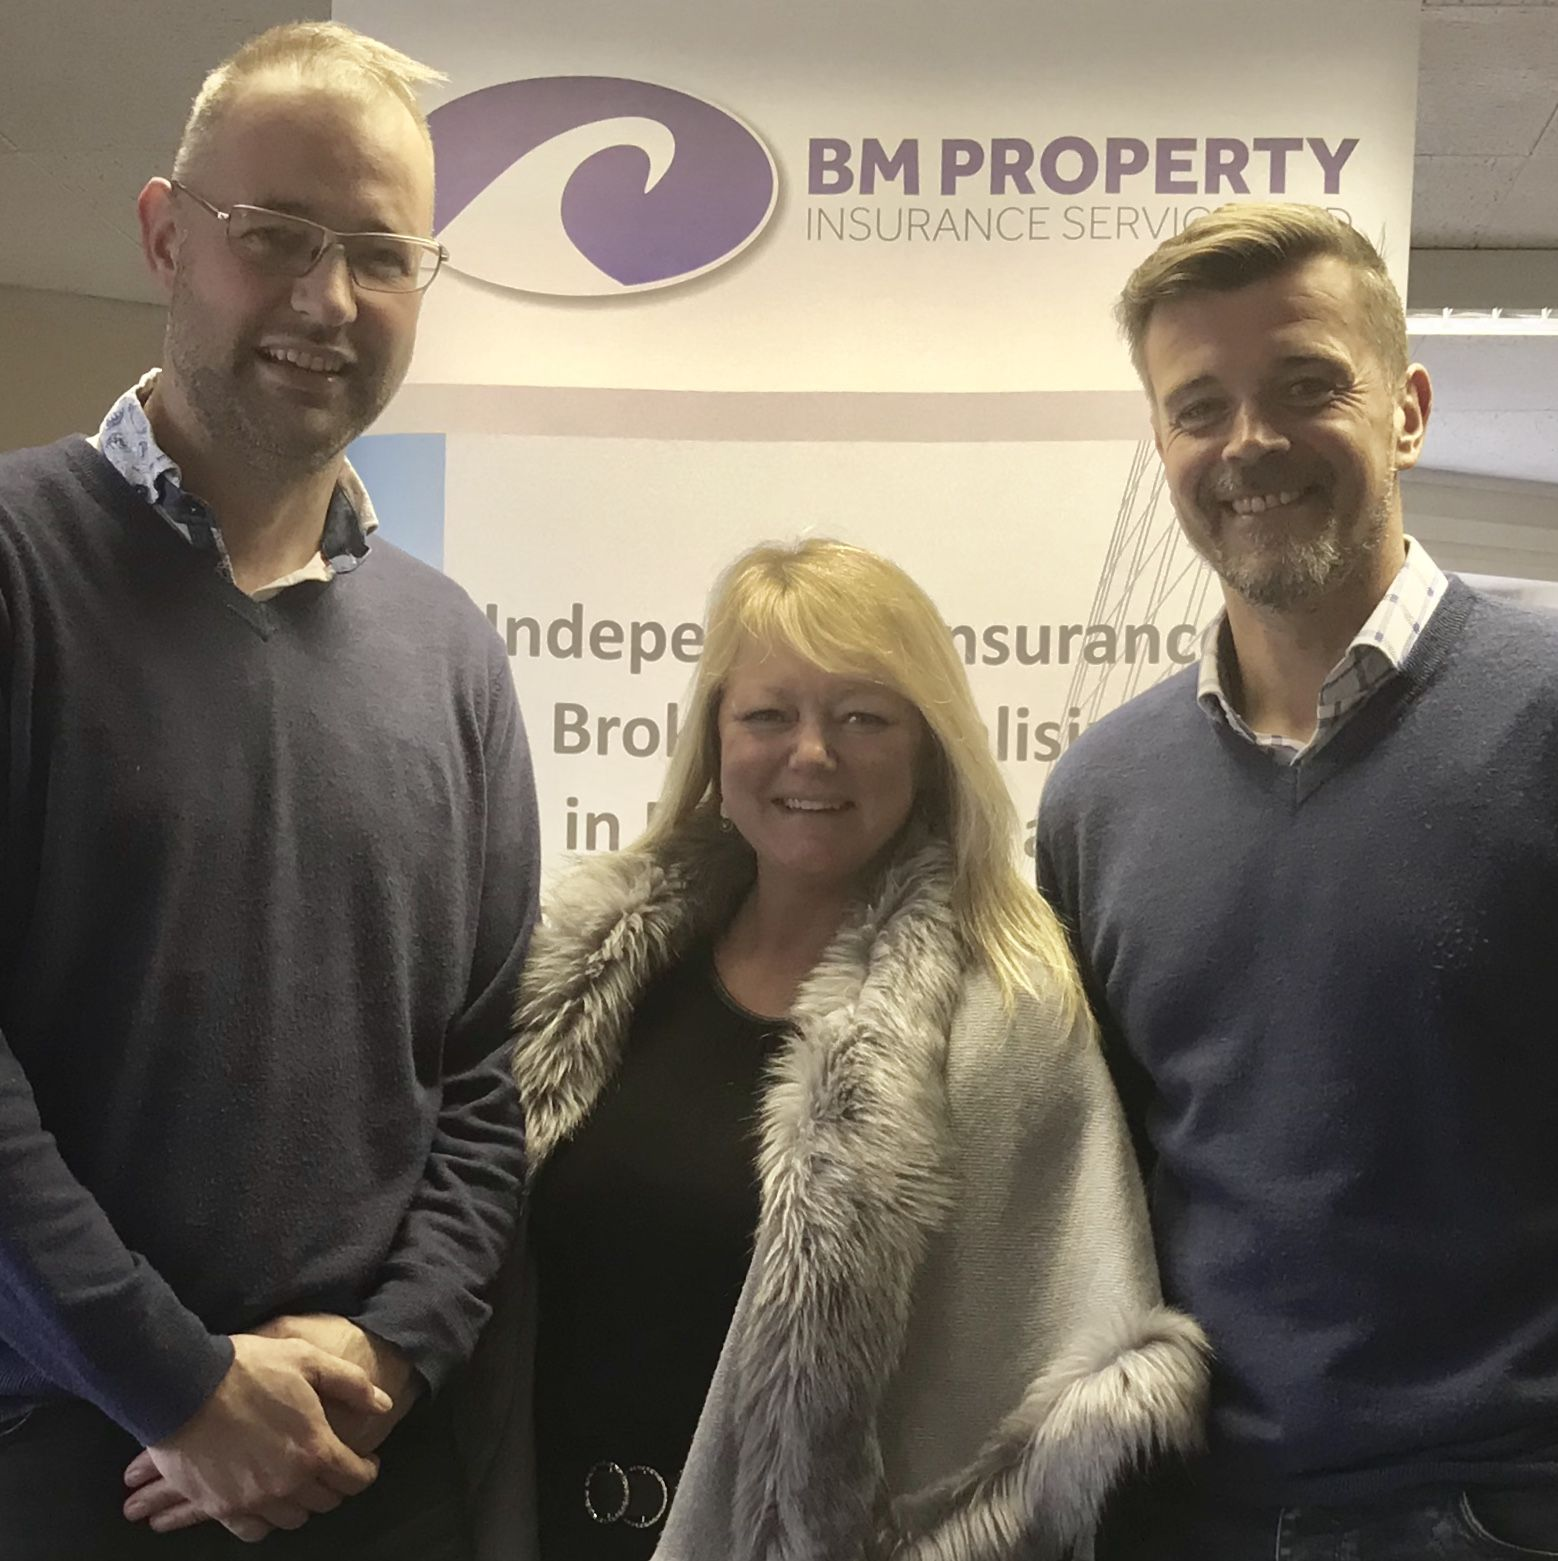 BMPI Appoint AE Marketing Solutions Marketing solution